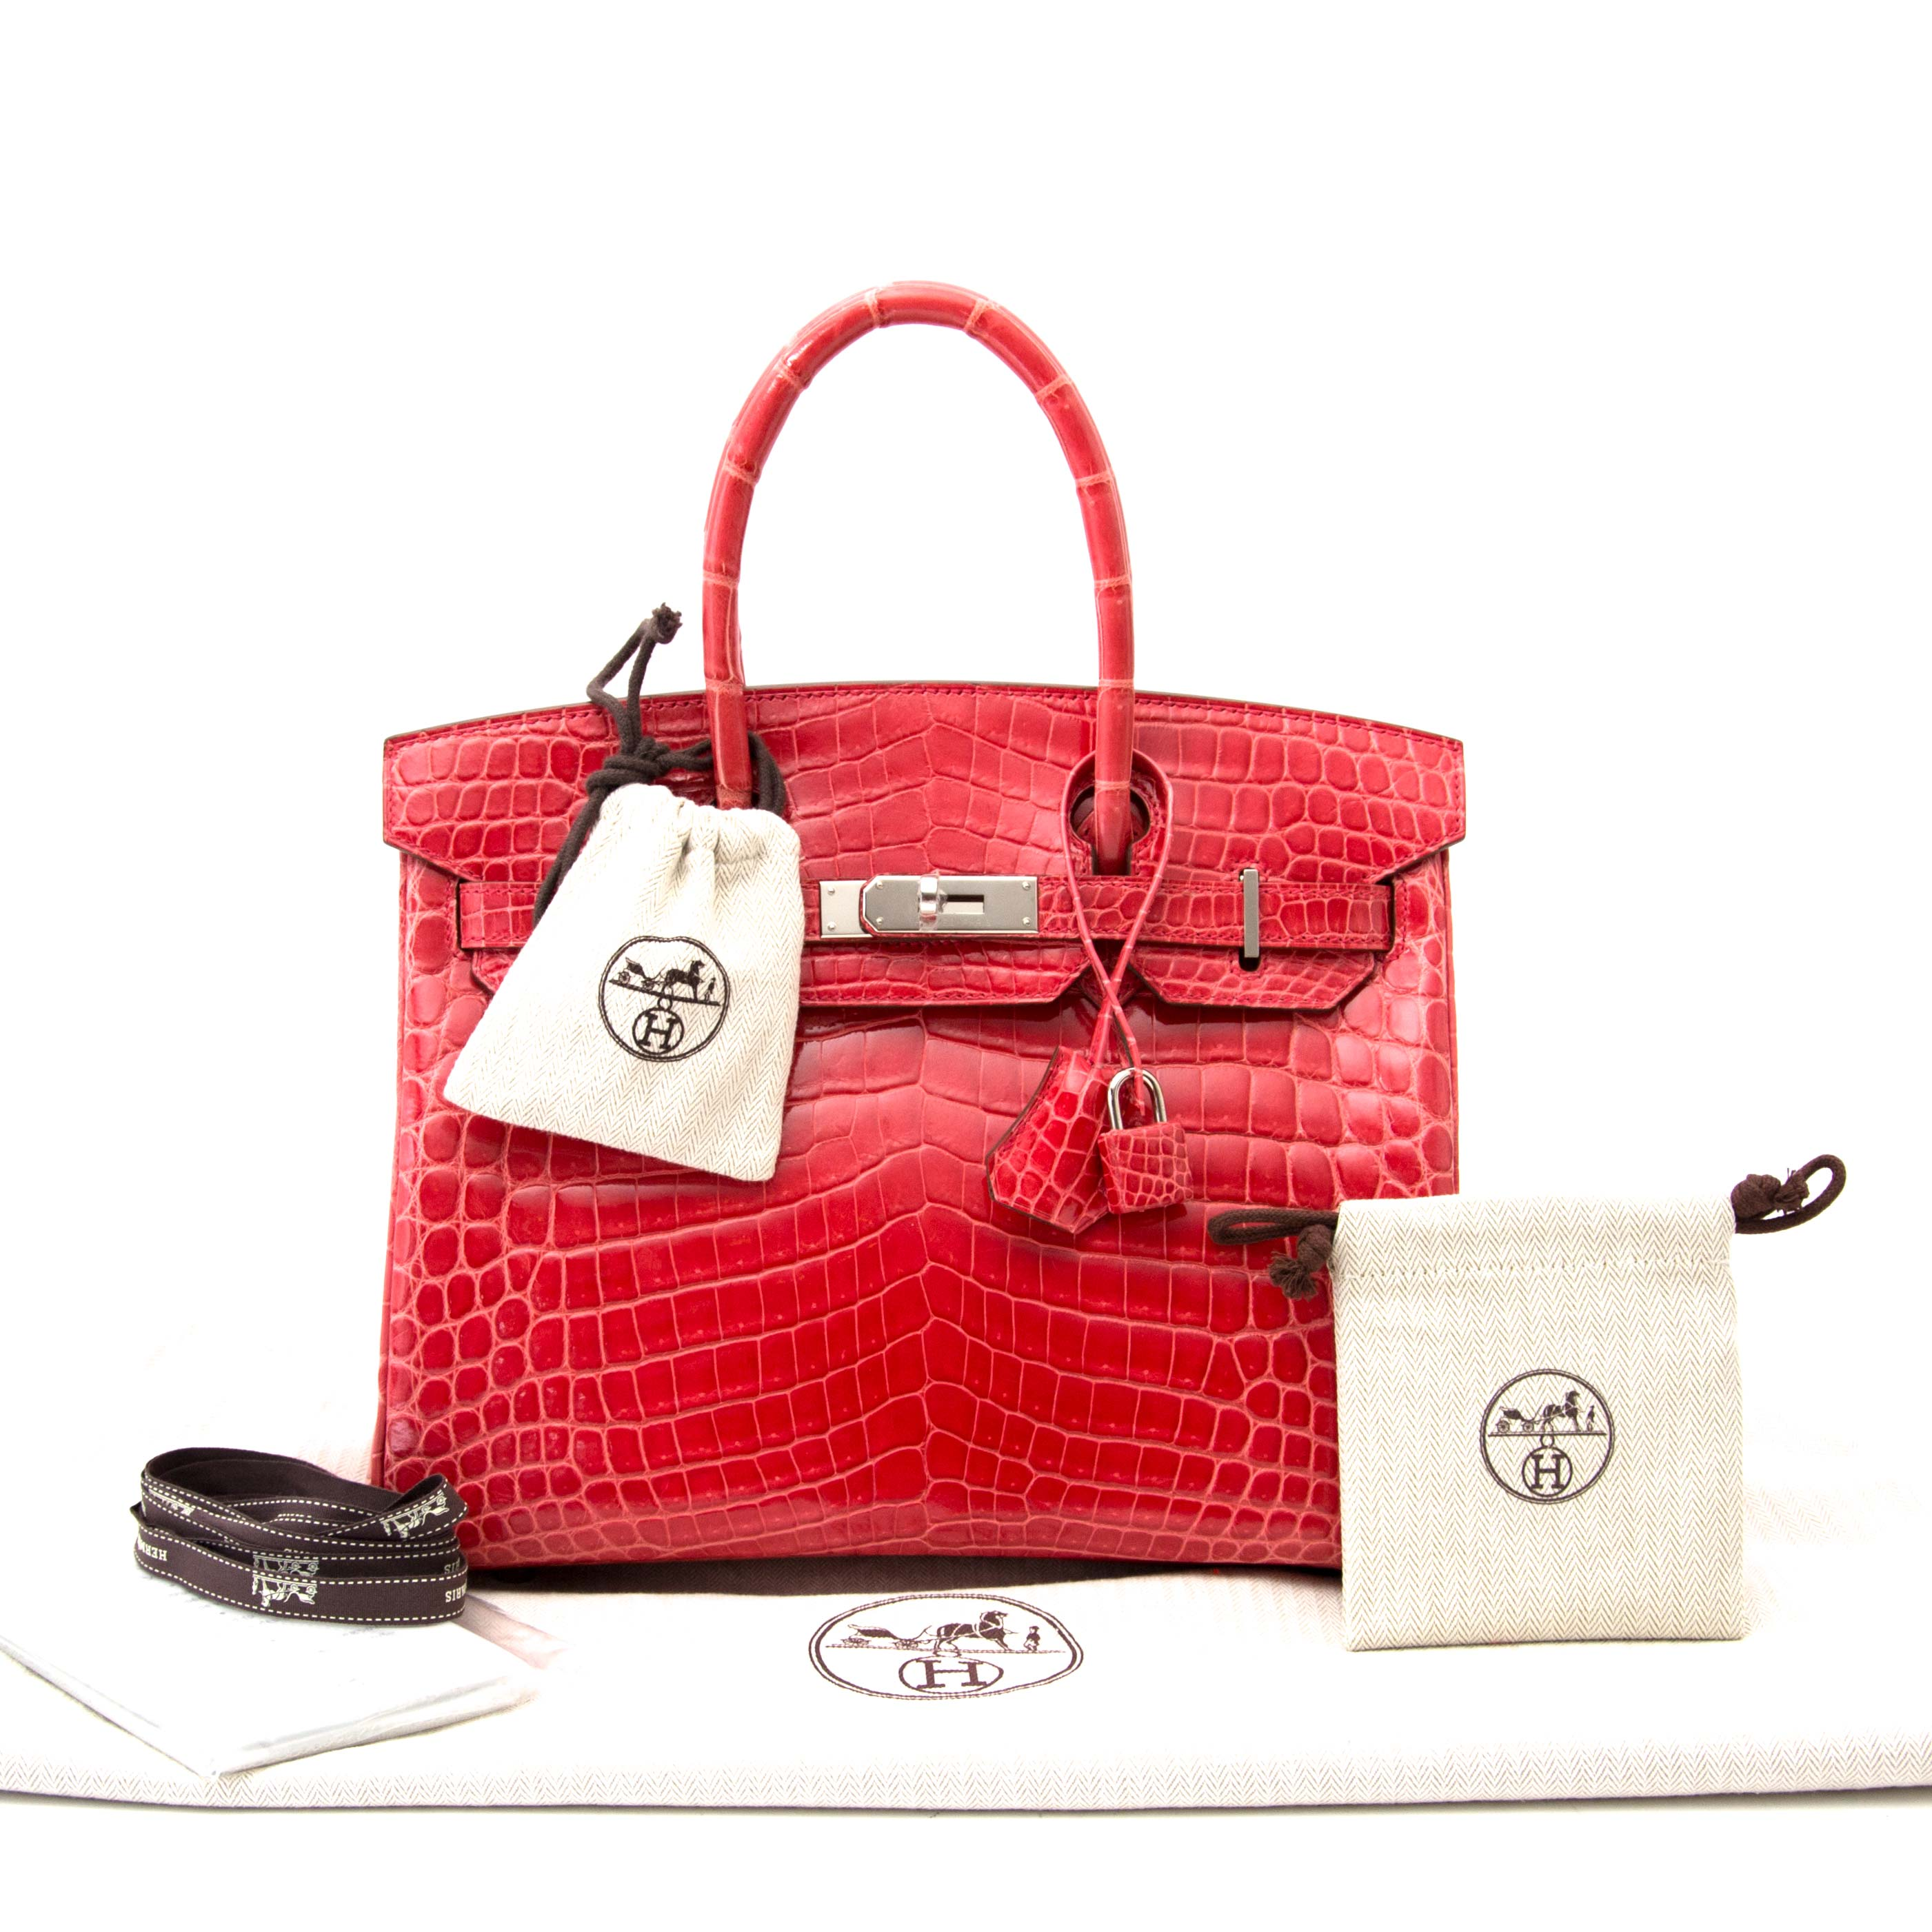 buy safe and secure online at labellov.com, the luxury secondhand webshop in antwerp, belgium. Hermès Birkin 30 crocodile Niloticus matte geranium.